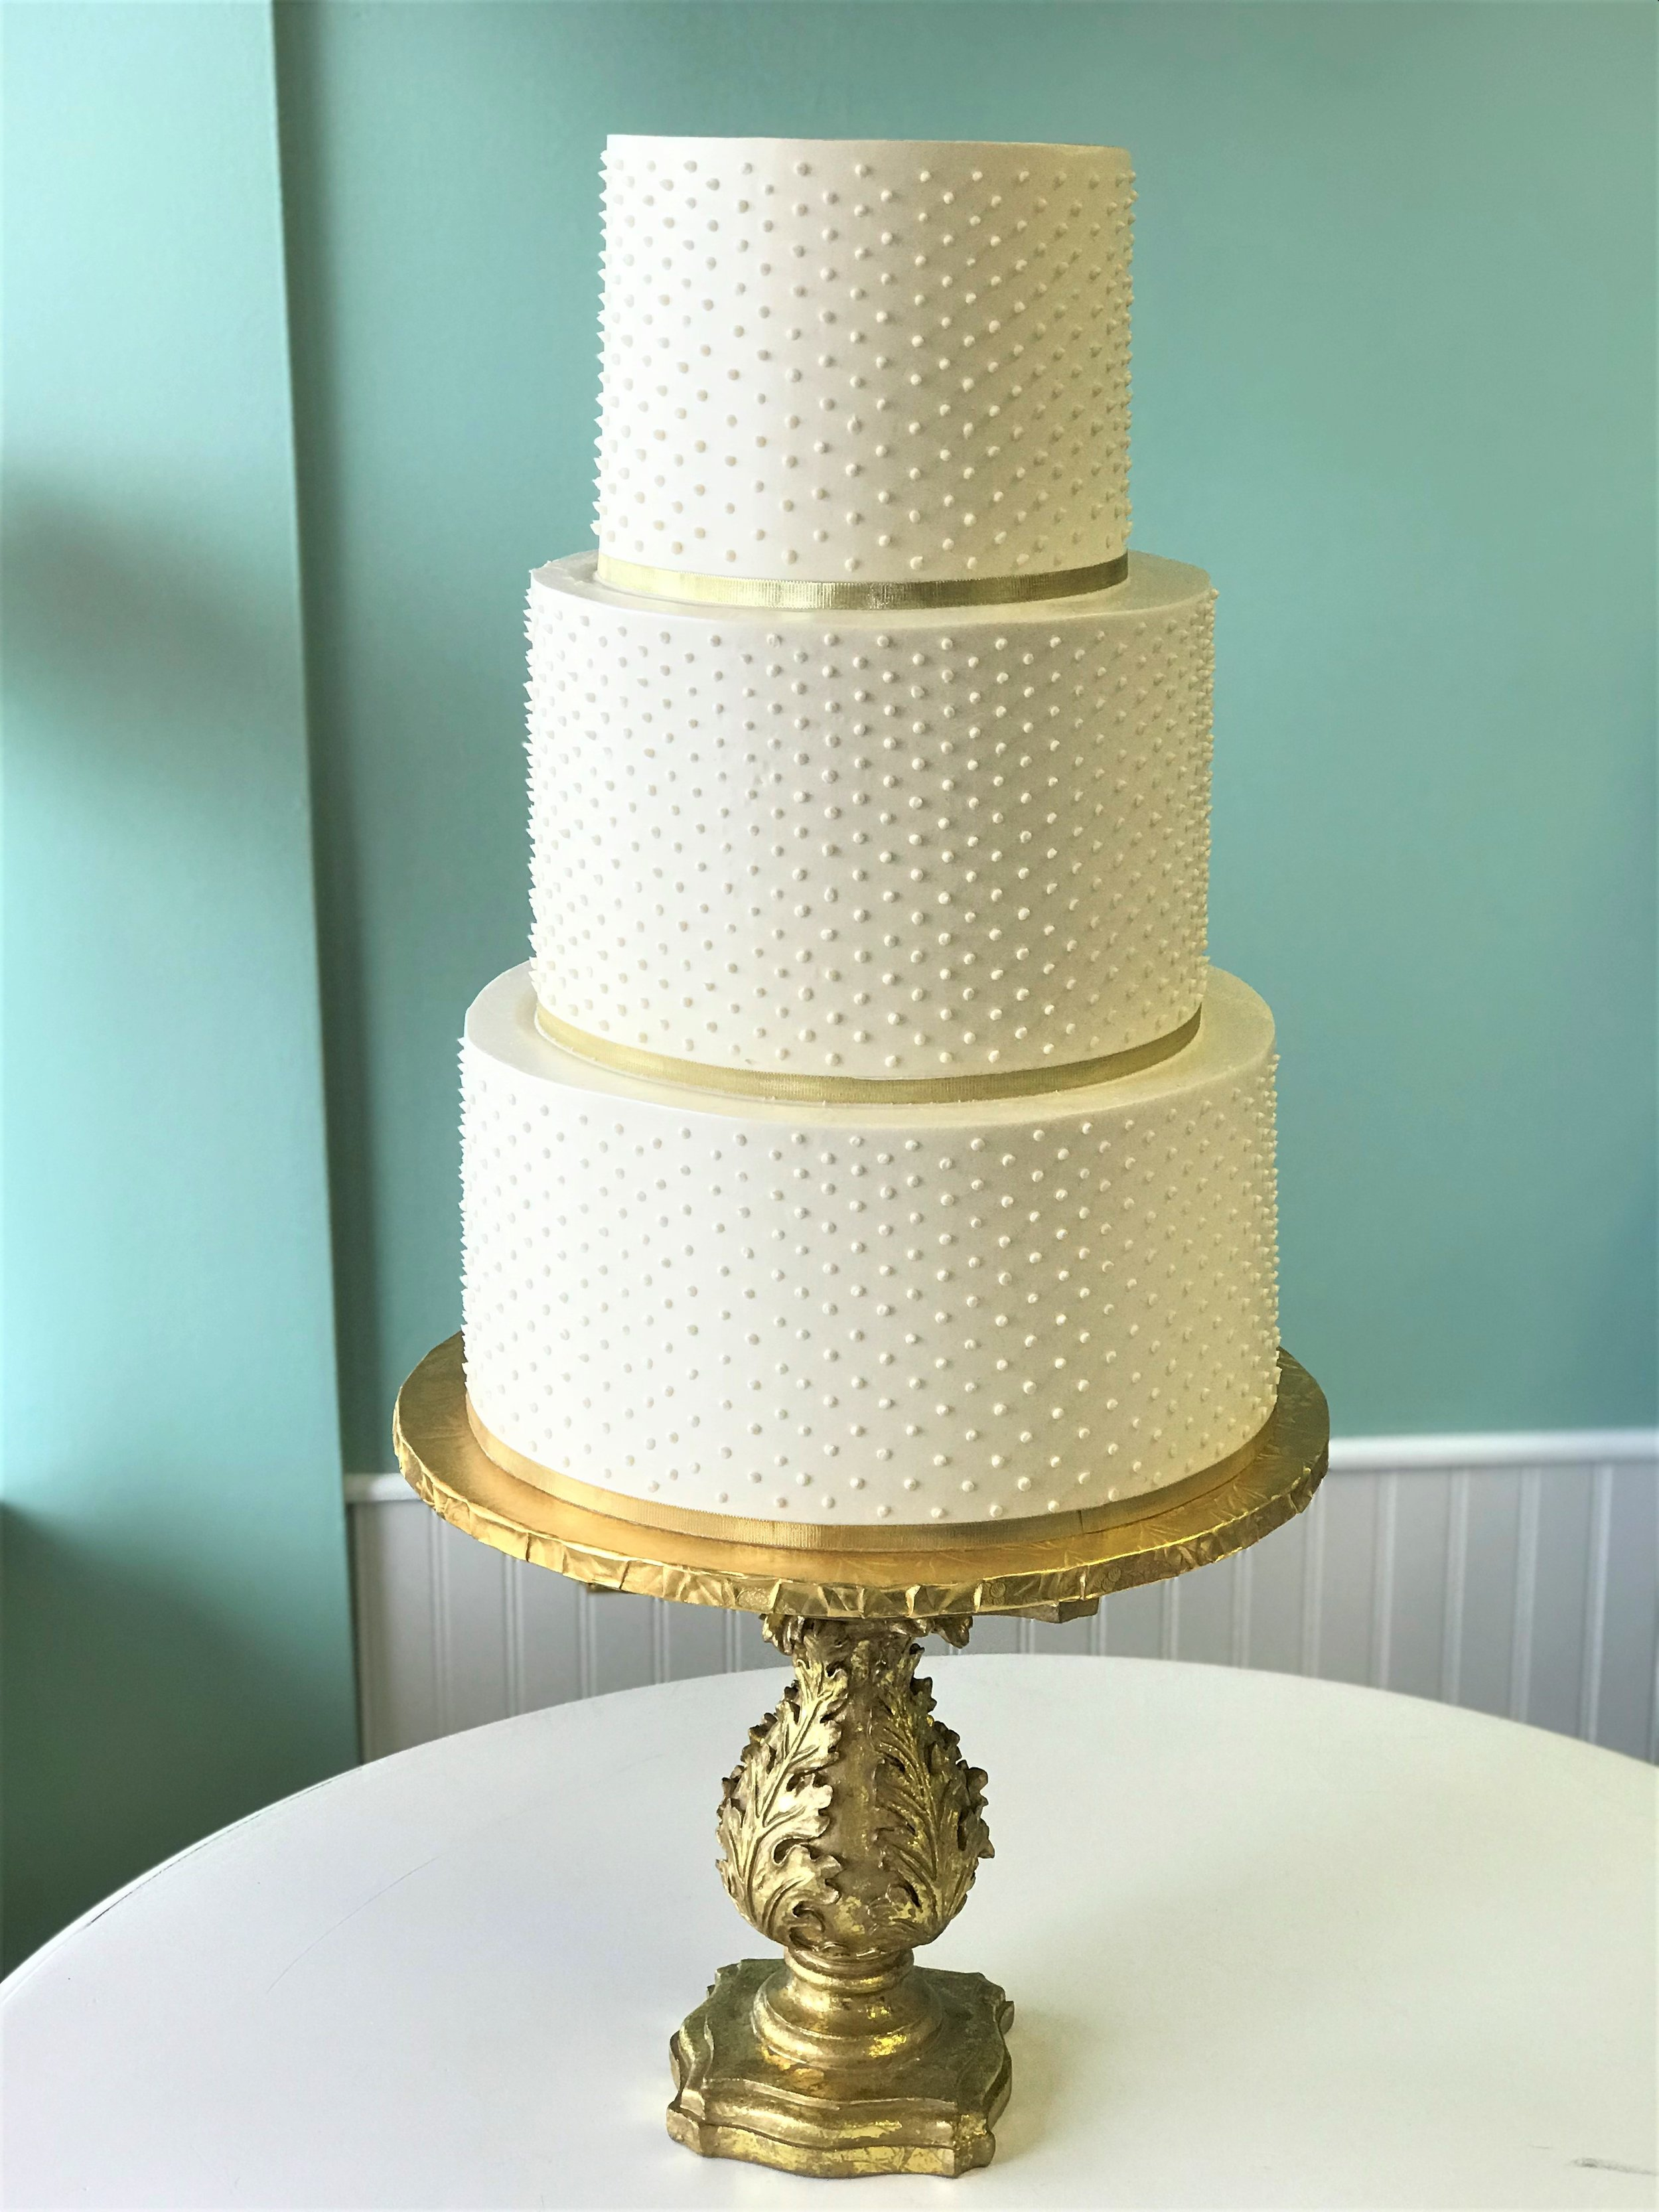 polka dot wedding cake.jpeg